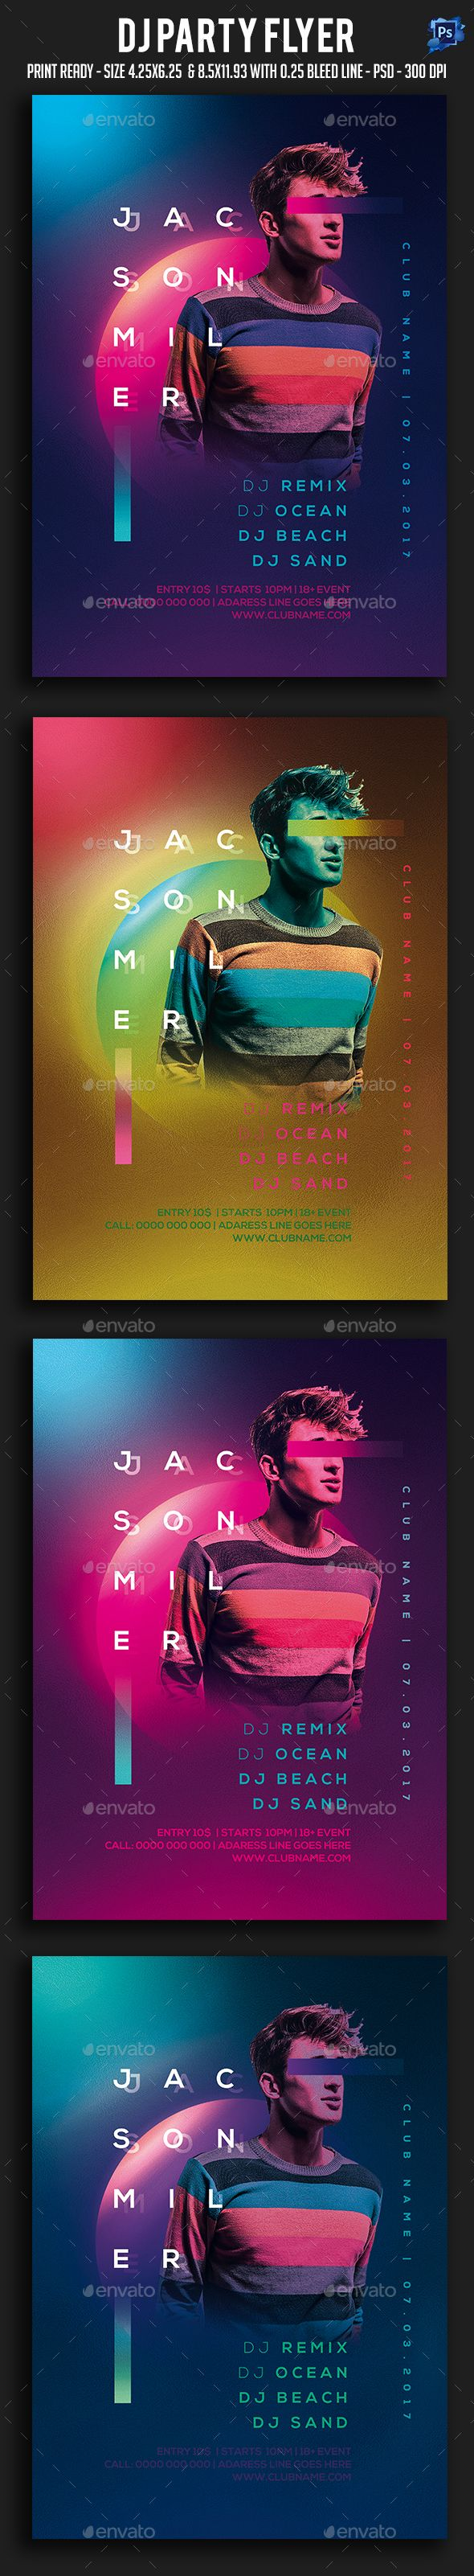 Dj Party Flyer — Photoshop PSD #electronic #birthday • Download ➝ https://graphicriver.net/item/dj-party-flyer/20230813?ref=pxcr